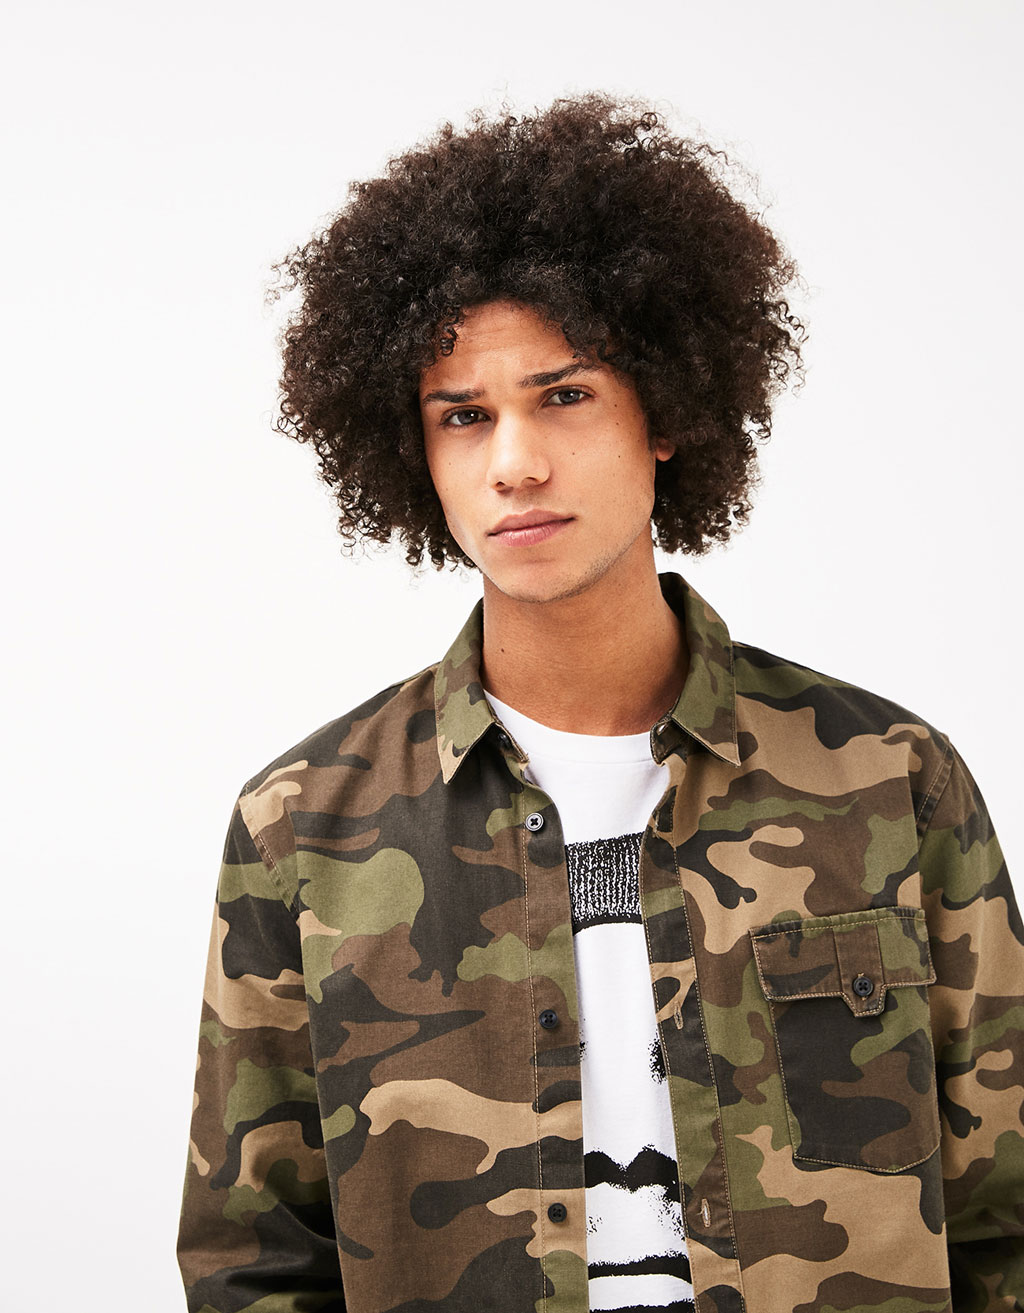 Camouflage printed shirt